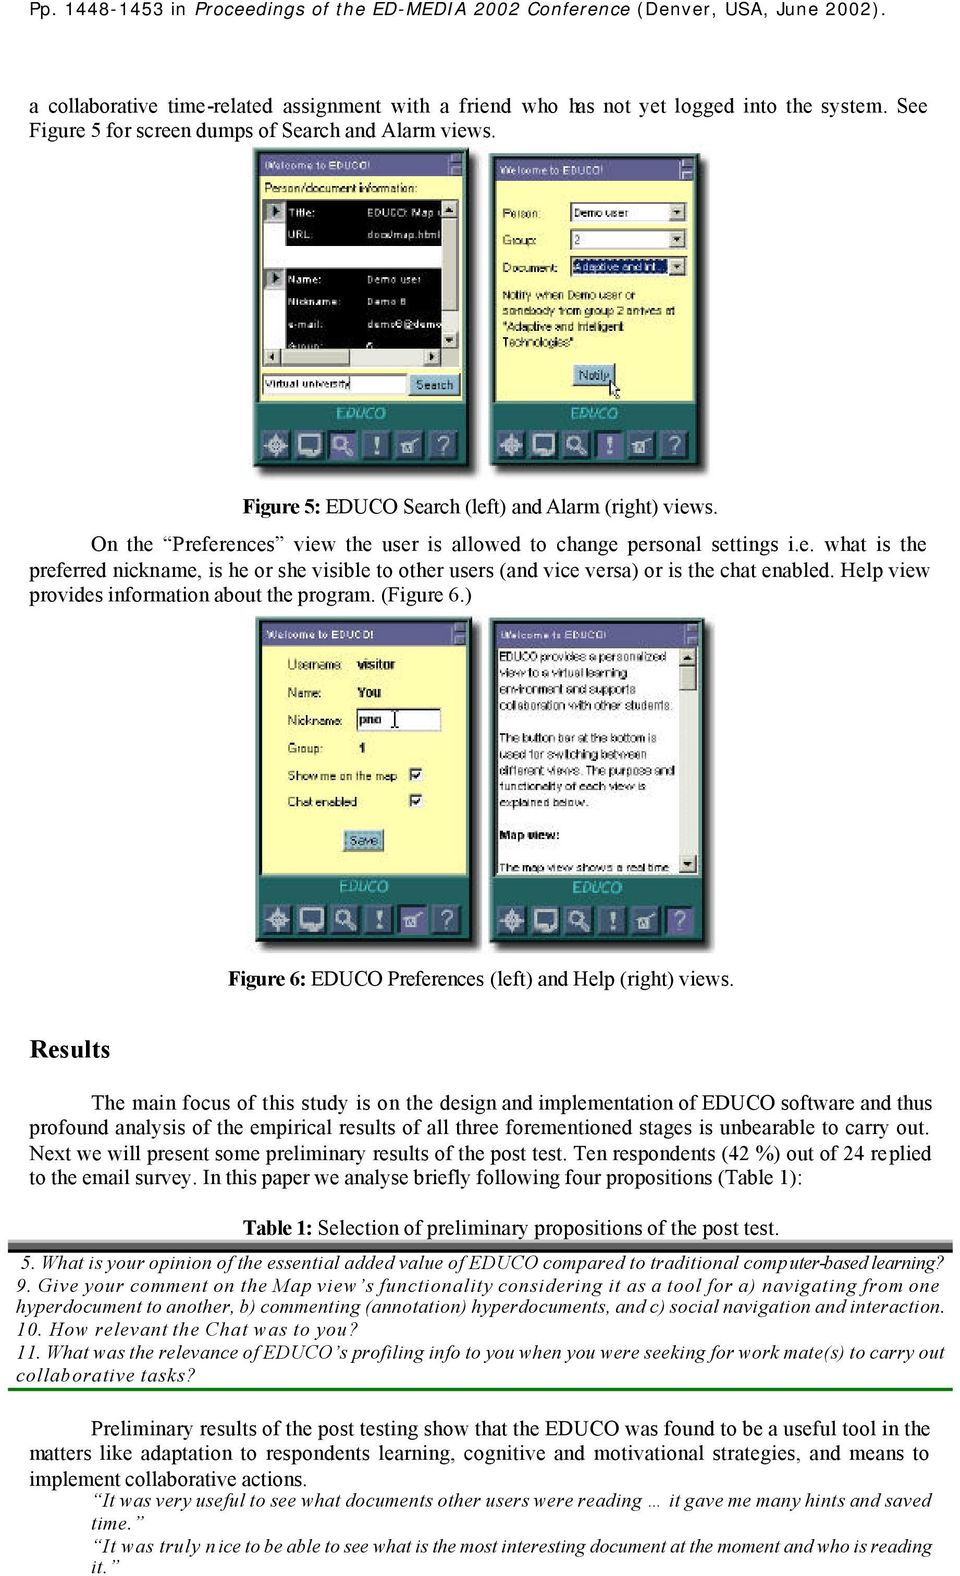 Help view provides information about the program. (Figure 6.) Figure 6: EDUCO Preferences (left) and Help (right) views.